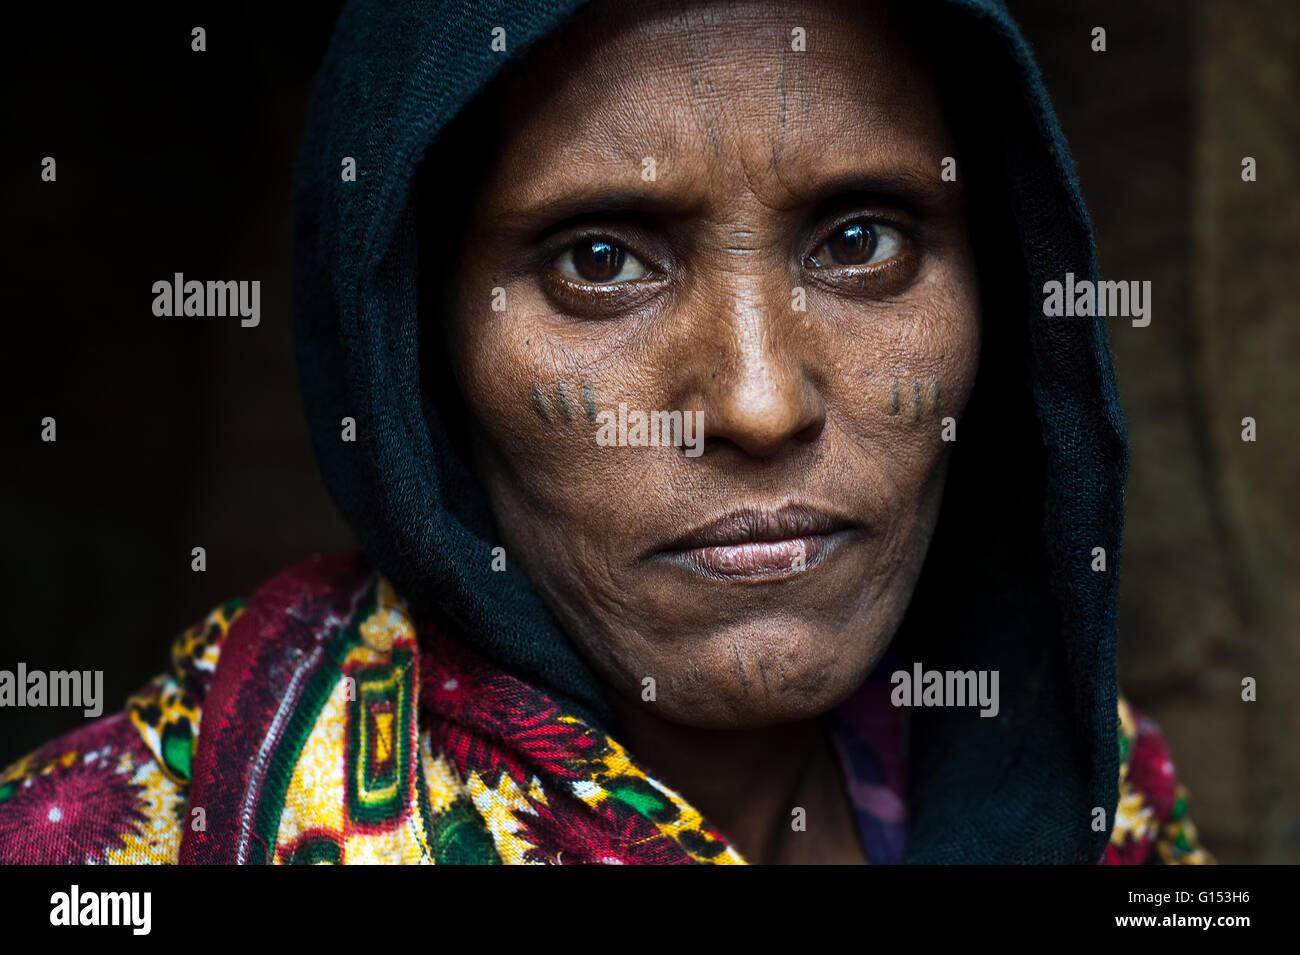 Female Eritrean refugee in Ethiopia She belongs to the Afar tribe. - Stock Image